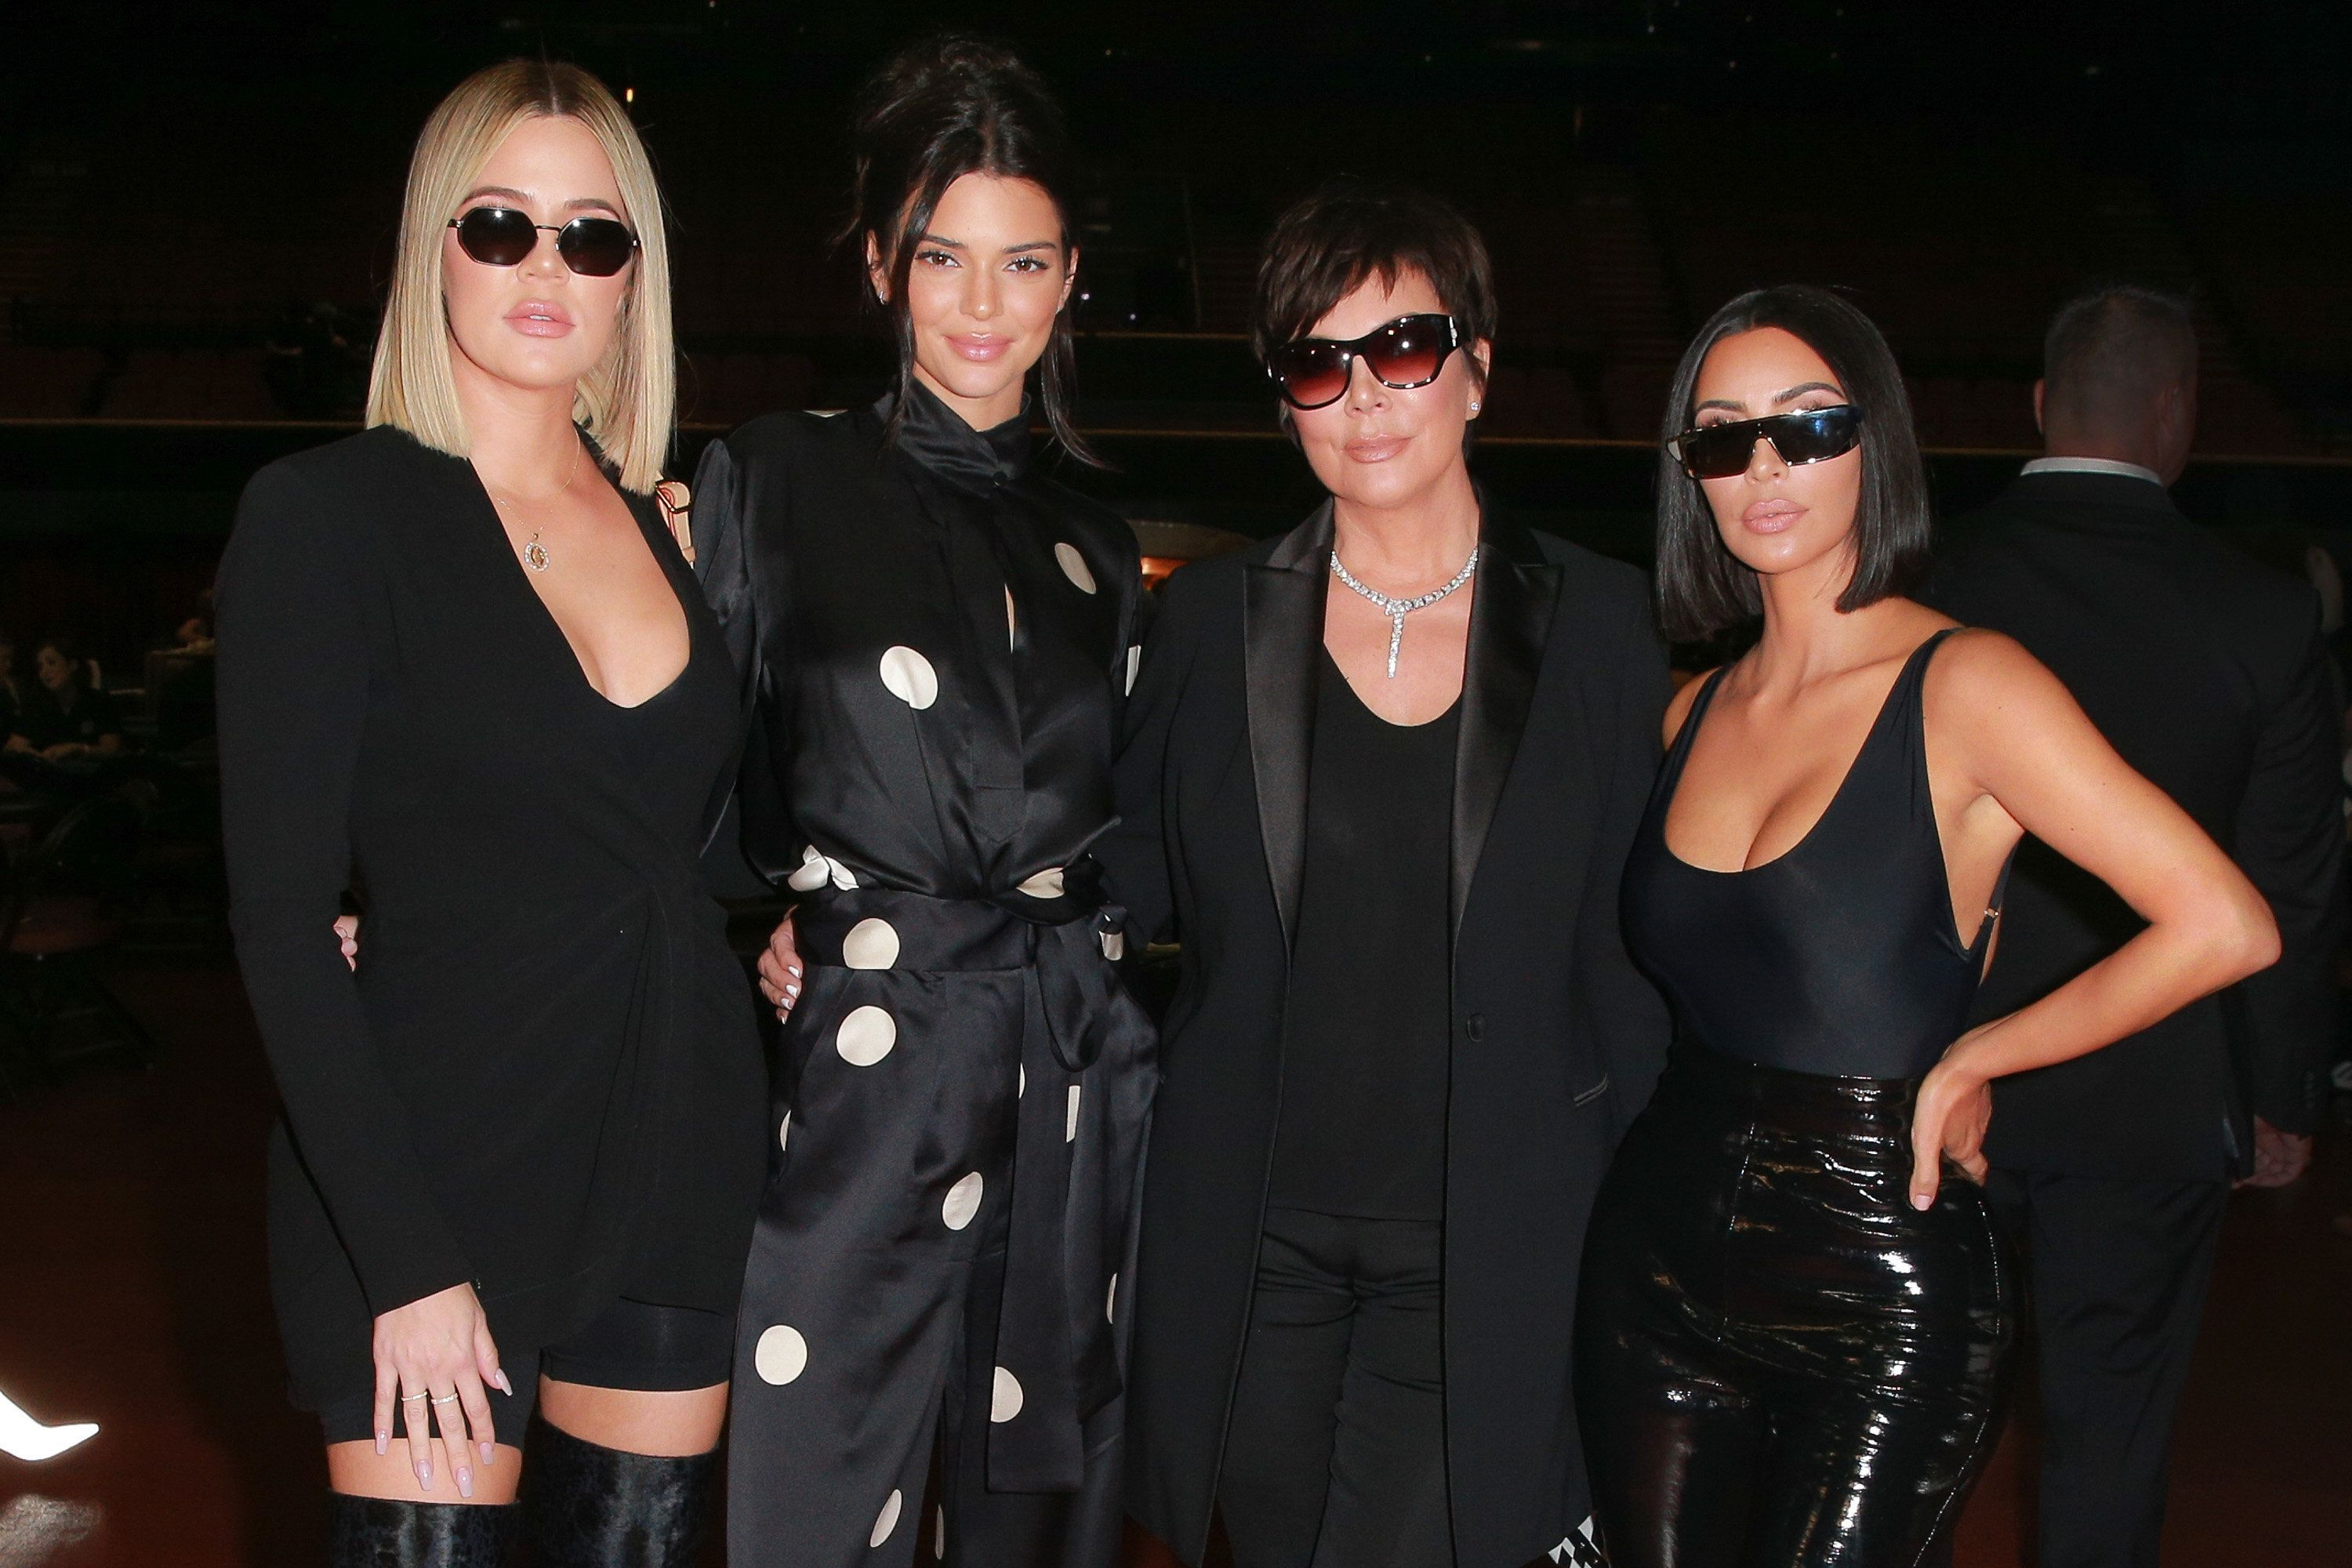 INGLEWOOD, CA - JULY 29:  (L-R) Khloe Kardashian, Kendall Jenner, Kris Jenner and Kim Kardashian West attend the first annual 'If Only' Texas hold'em charity poker tournament benefiting City of Hope at The Forum on July 29, 2018 in Inglewood, California.  (Photo by Rich Fury/Getty Images)